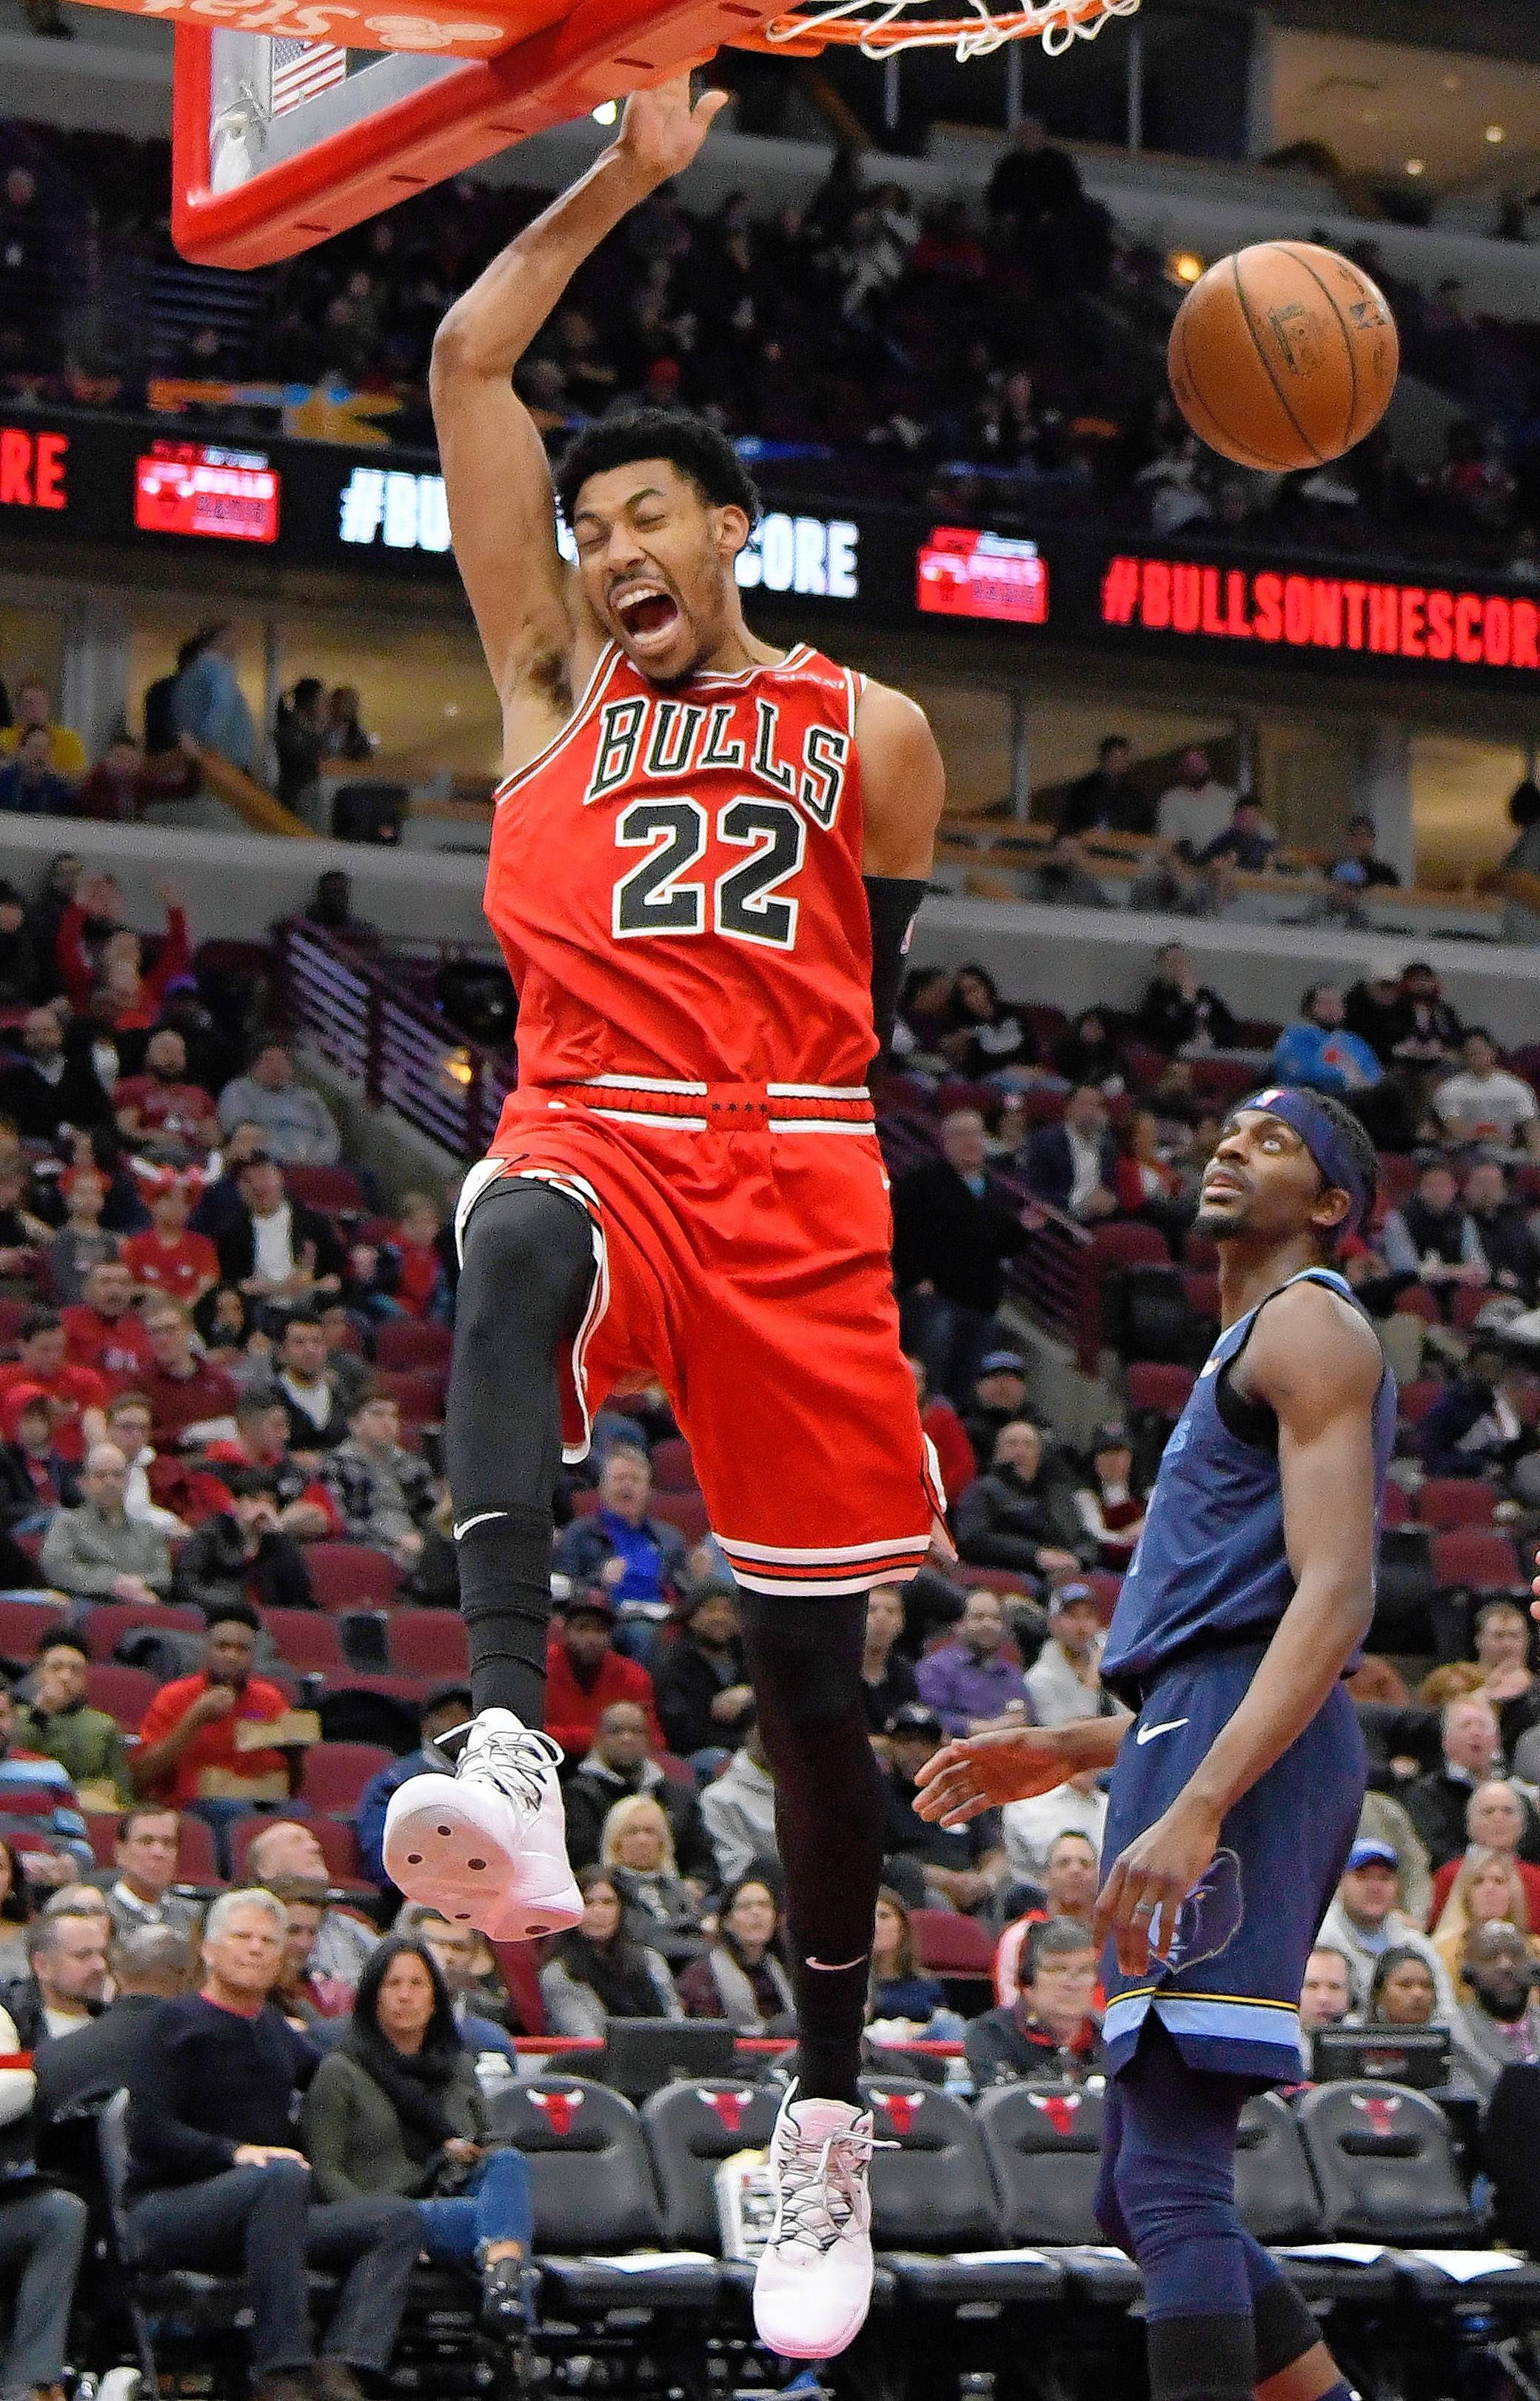 Bulls forward Otto Porter Jr. reacts after dunking the ball as Memphis Grizzlies forward Justin Holiday stands nearby during Chicago's 122-110 victory at home Wednesday. Porter was known to be inconsistent with the Washington Wizards, but he's been great in his first four games as a Bull.